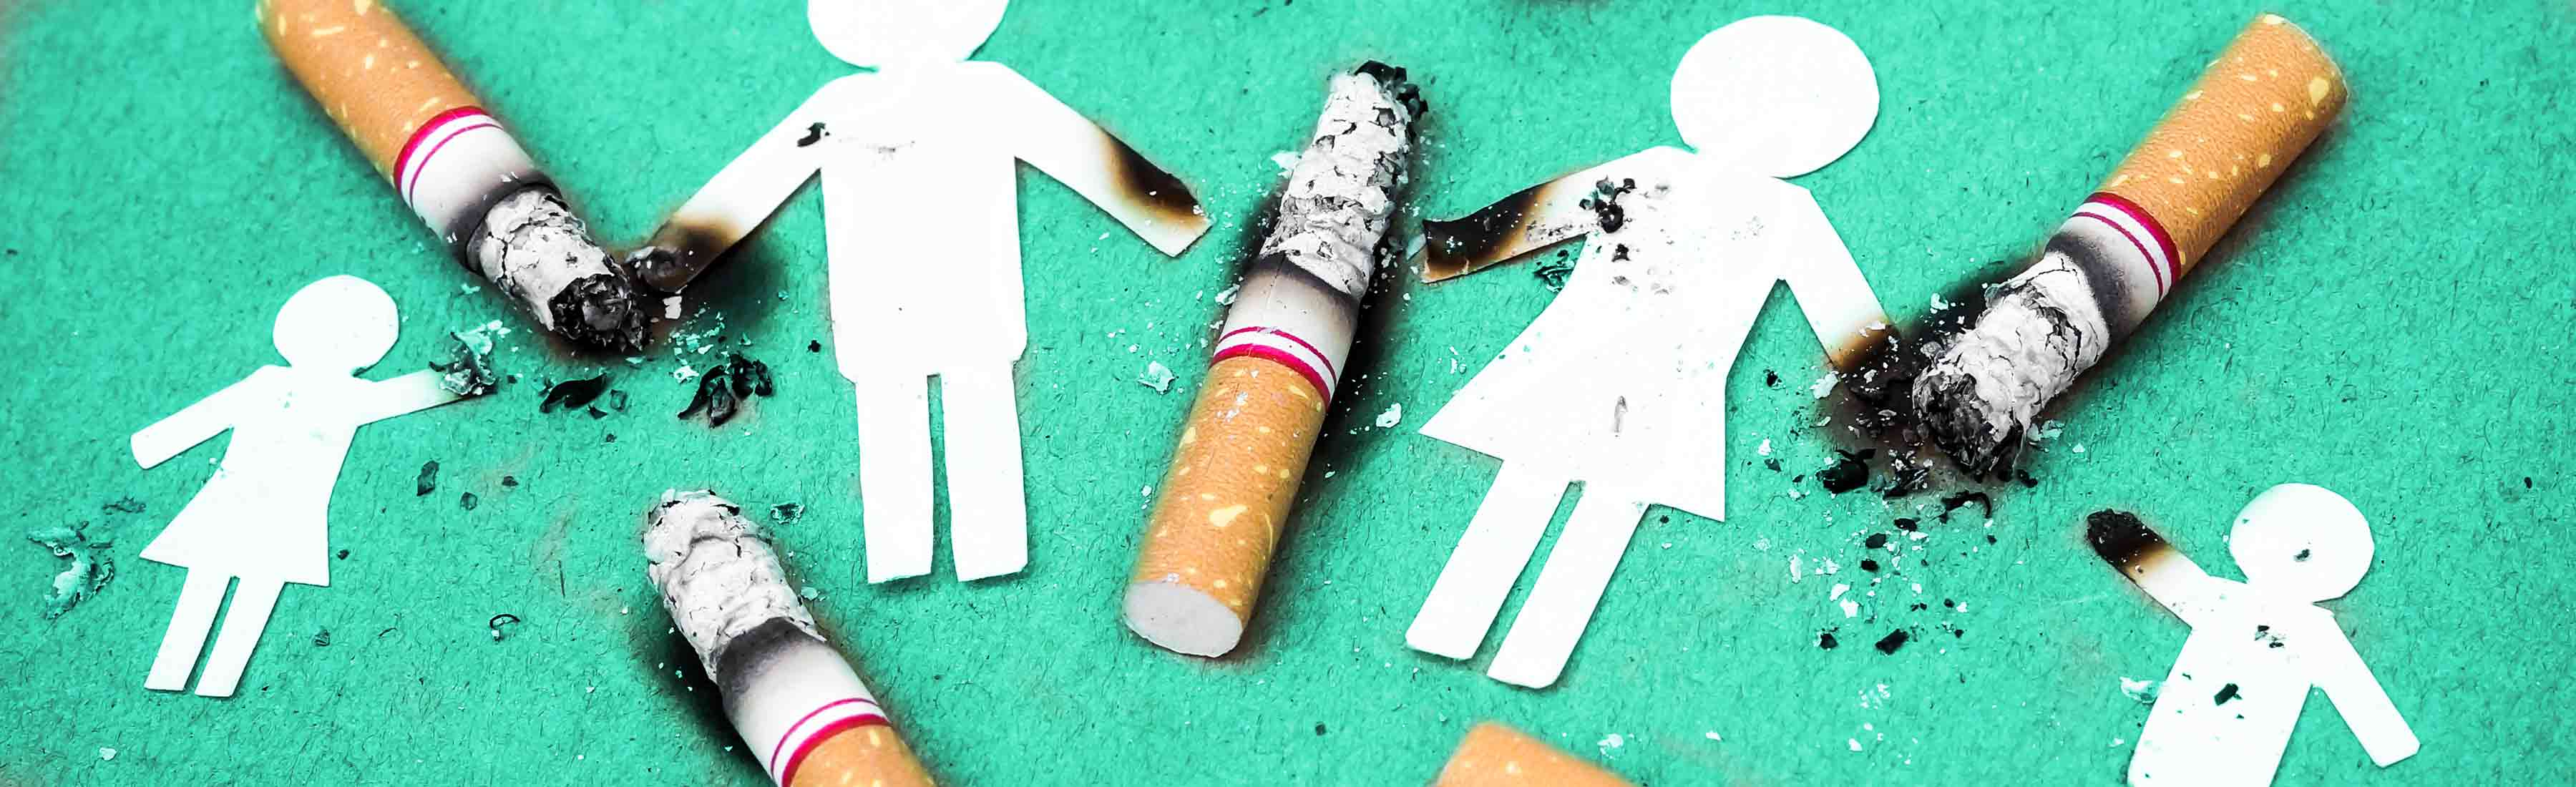 Second-hand Smoking Affects on Others